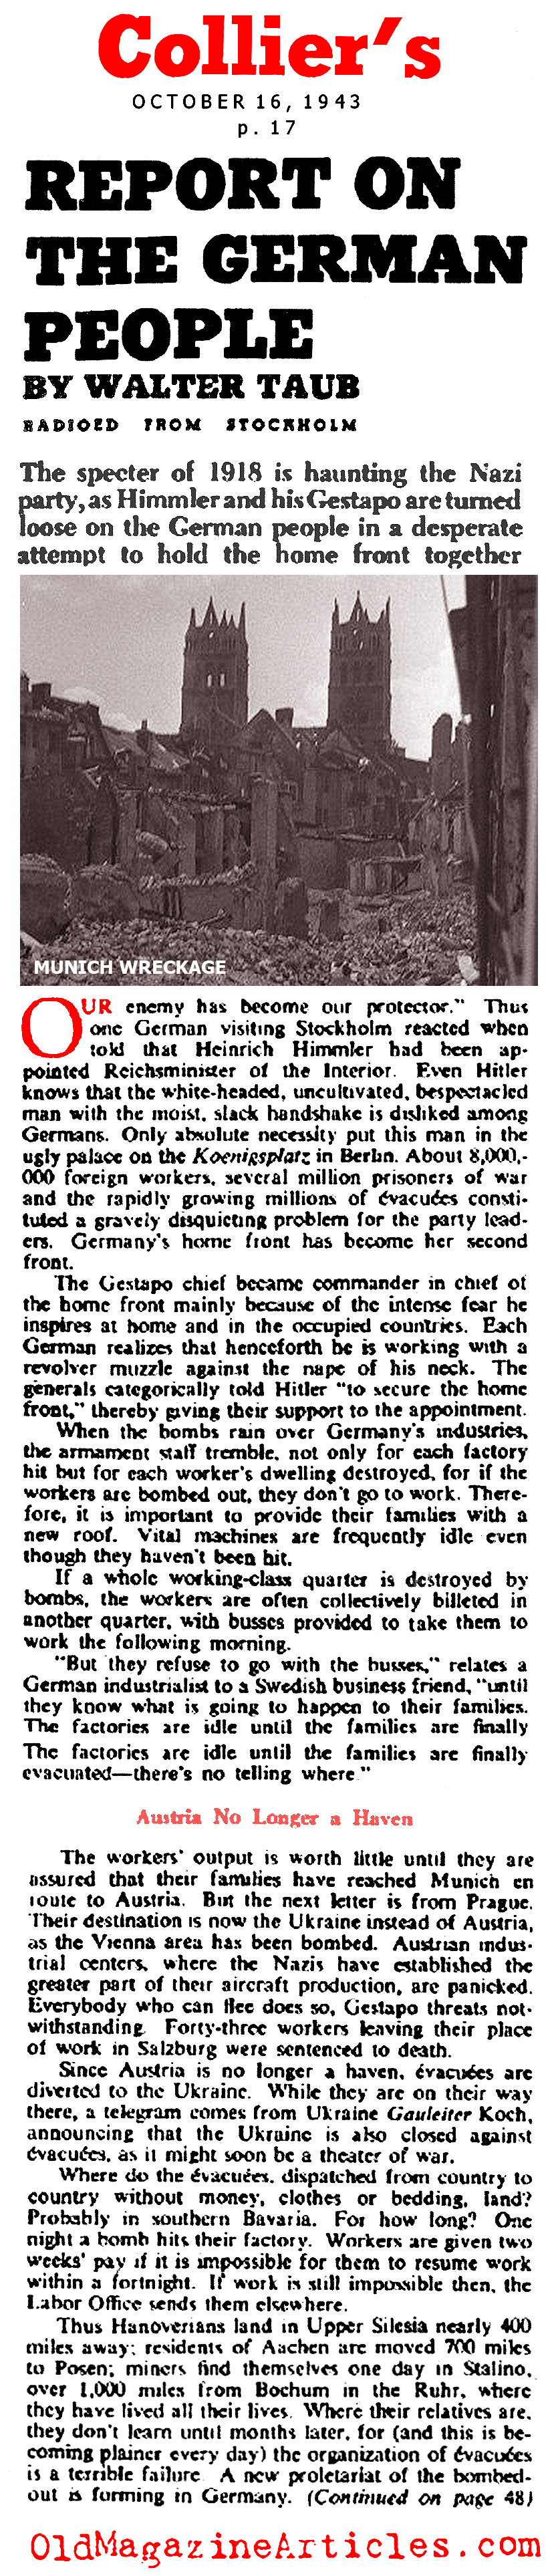 WW2 GERMAN HOME FRONT ARTICLE,WW2 NAZI HOME FRONT ARTICLE 1943 ...